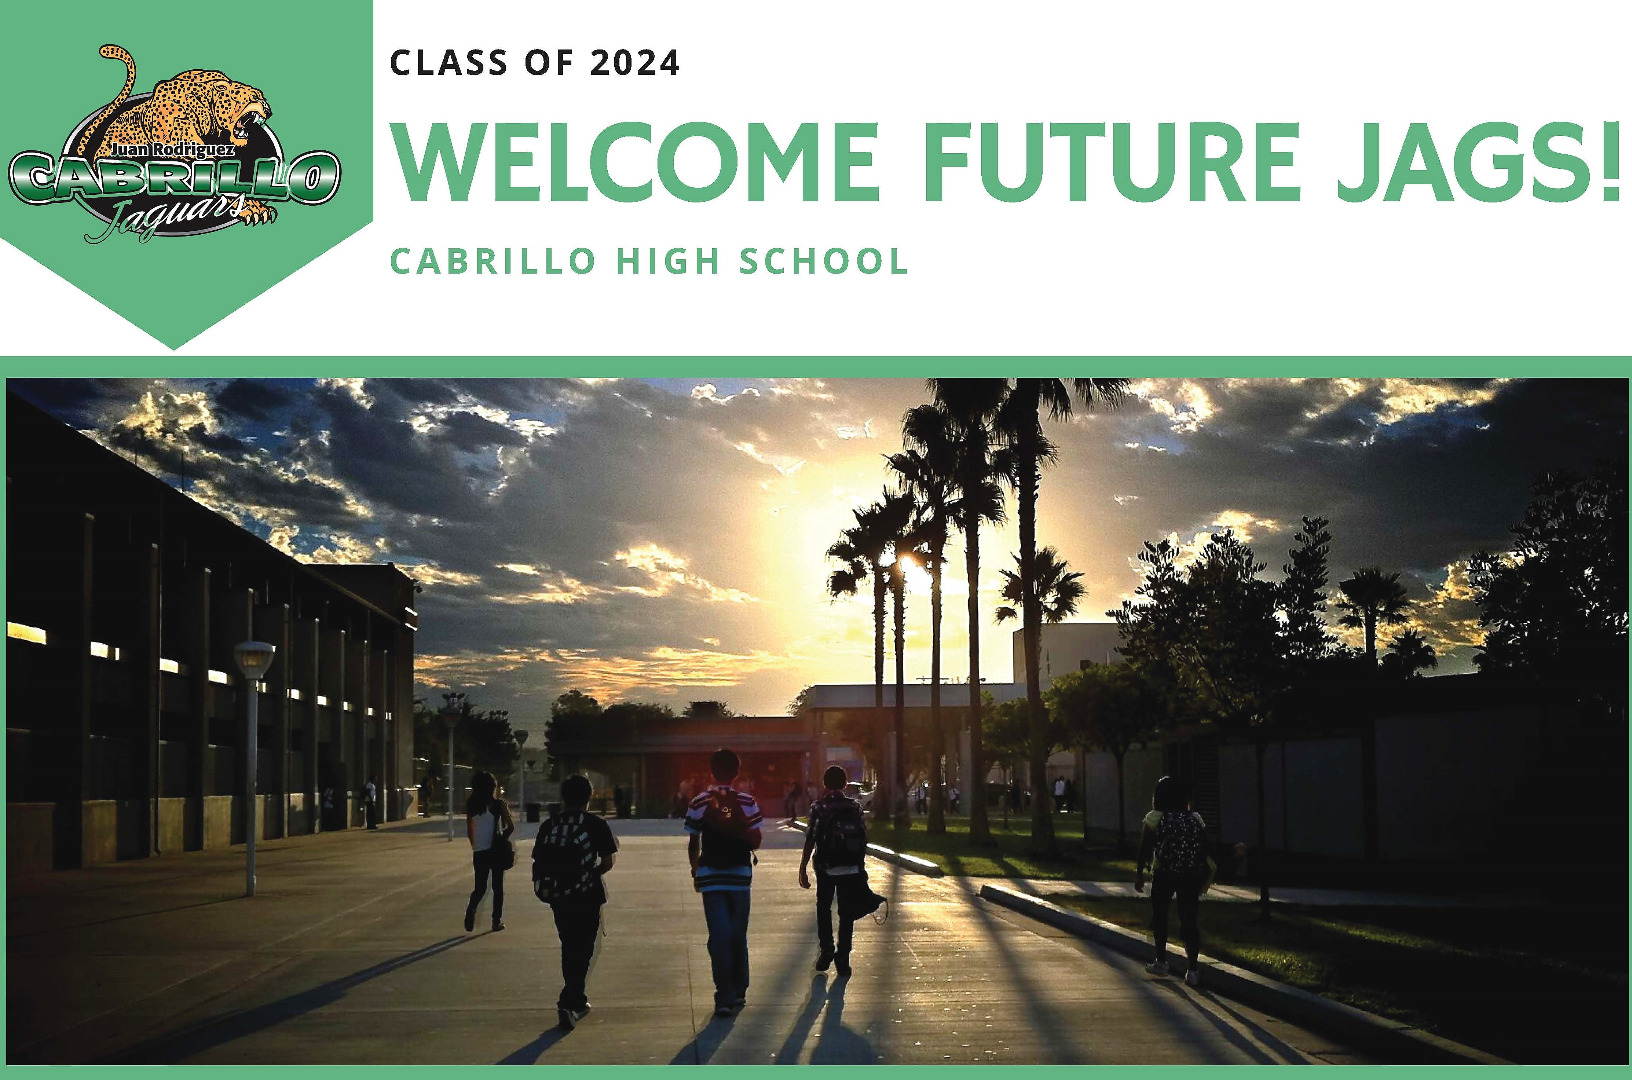 Welcome future jags